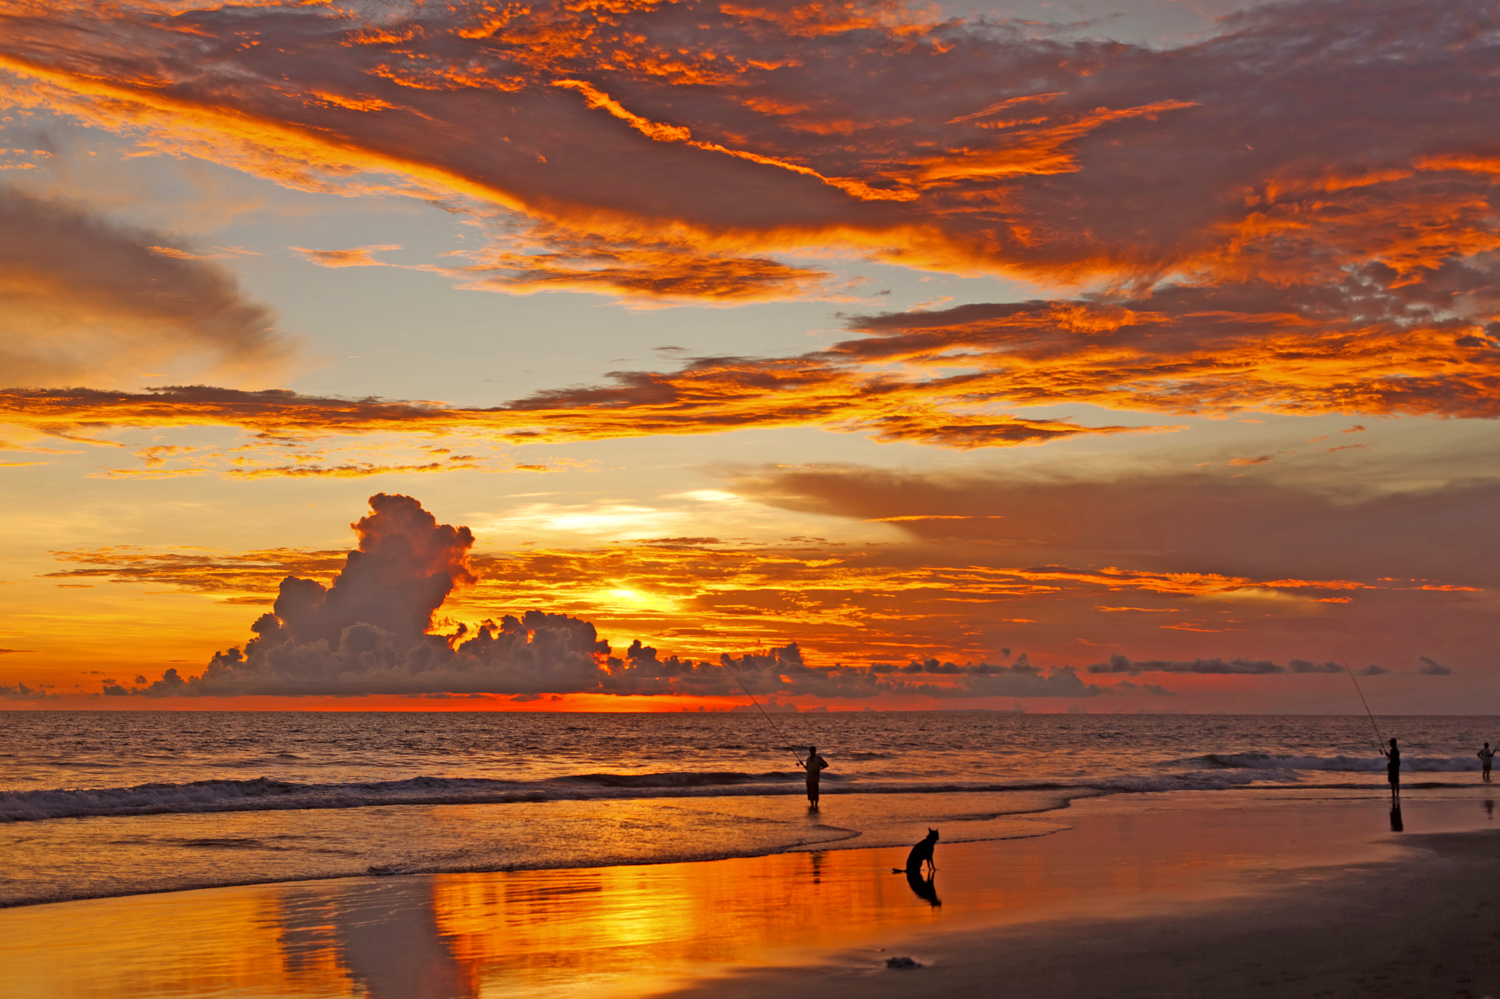 Sunset in Bali Beach: Bali Island the land of gods